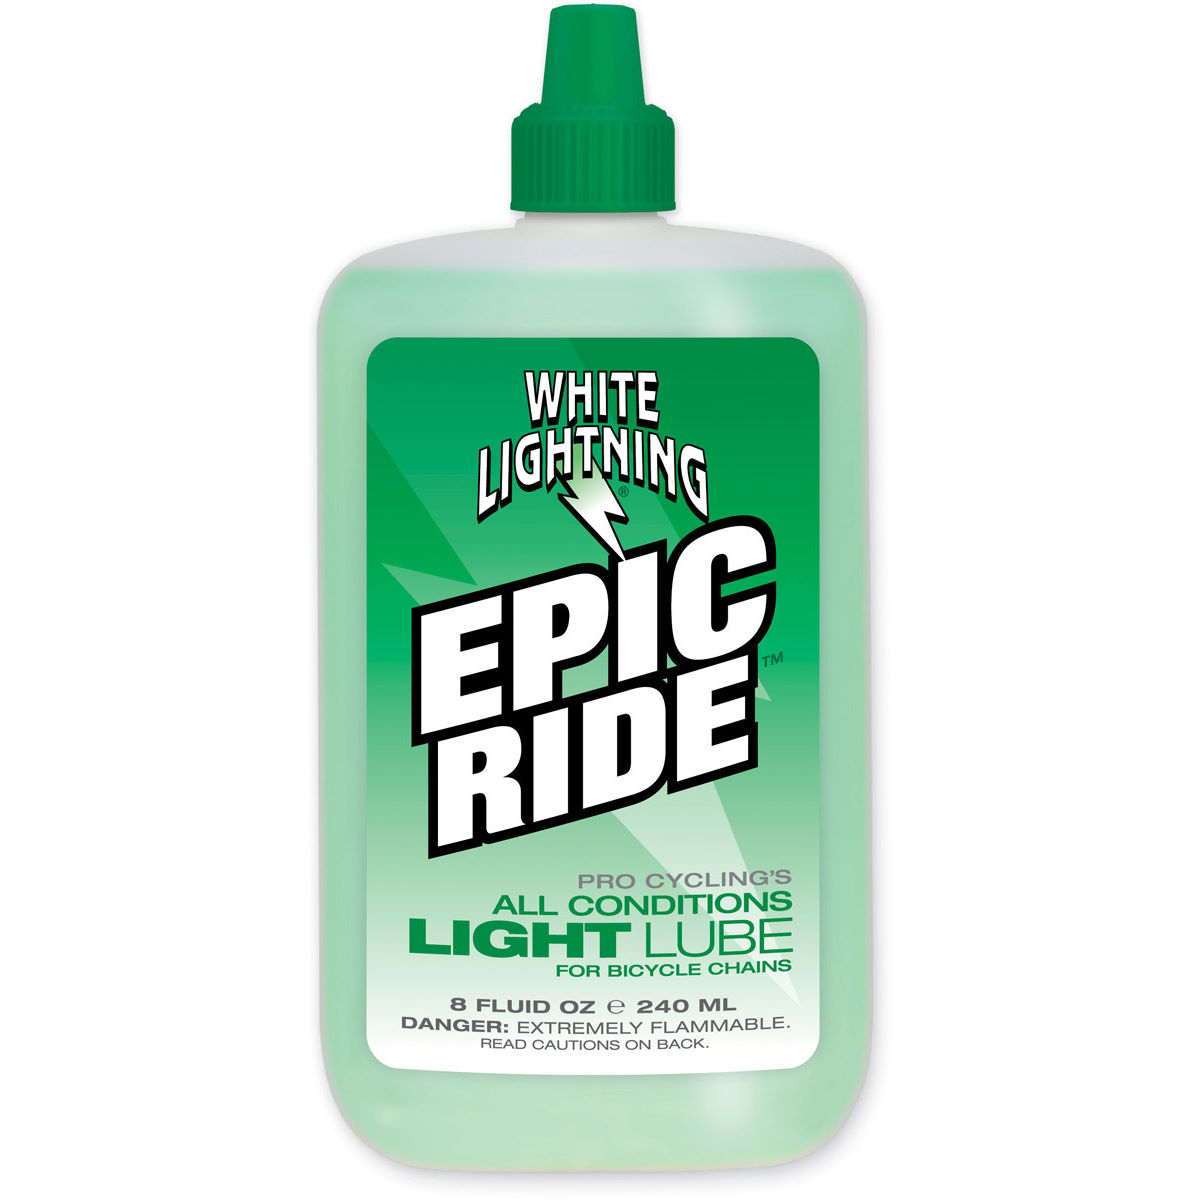 Lubricante White Lightning Epic Ride (240 ml) - Lubricantes